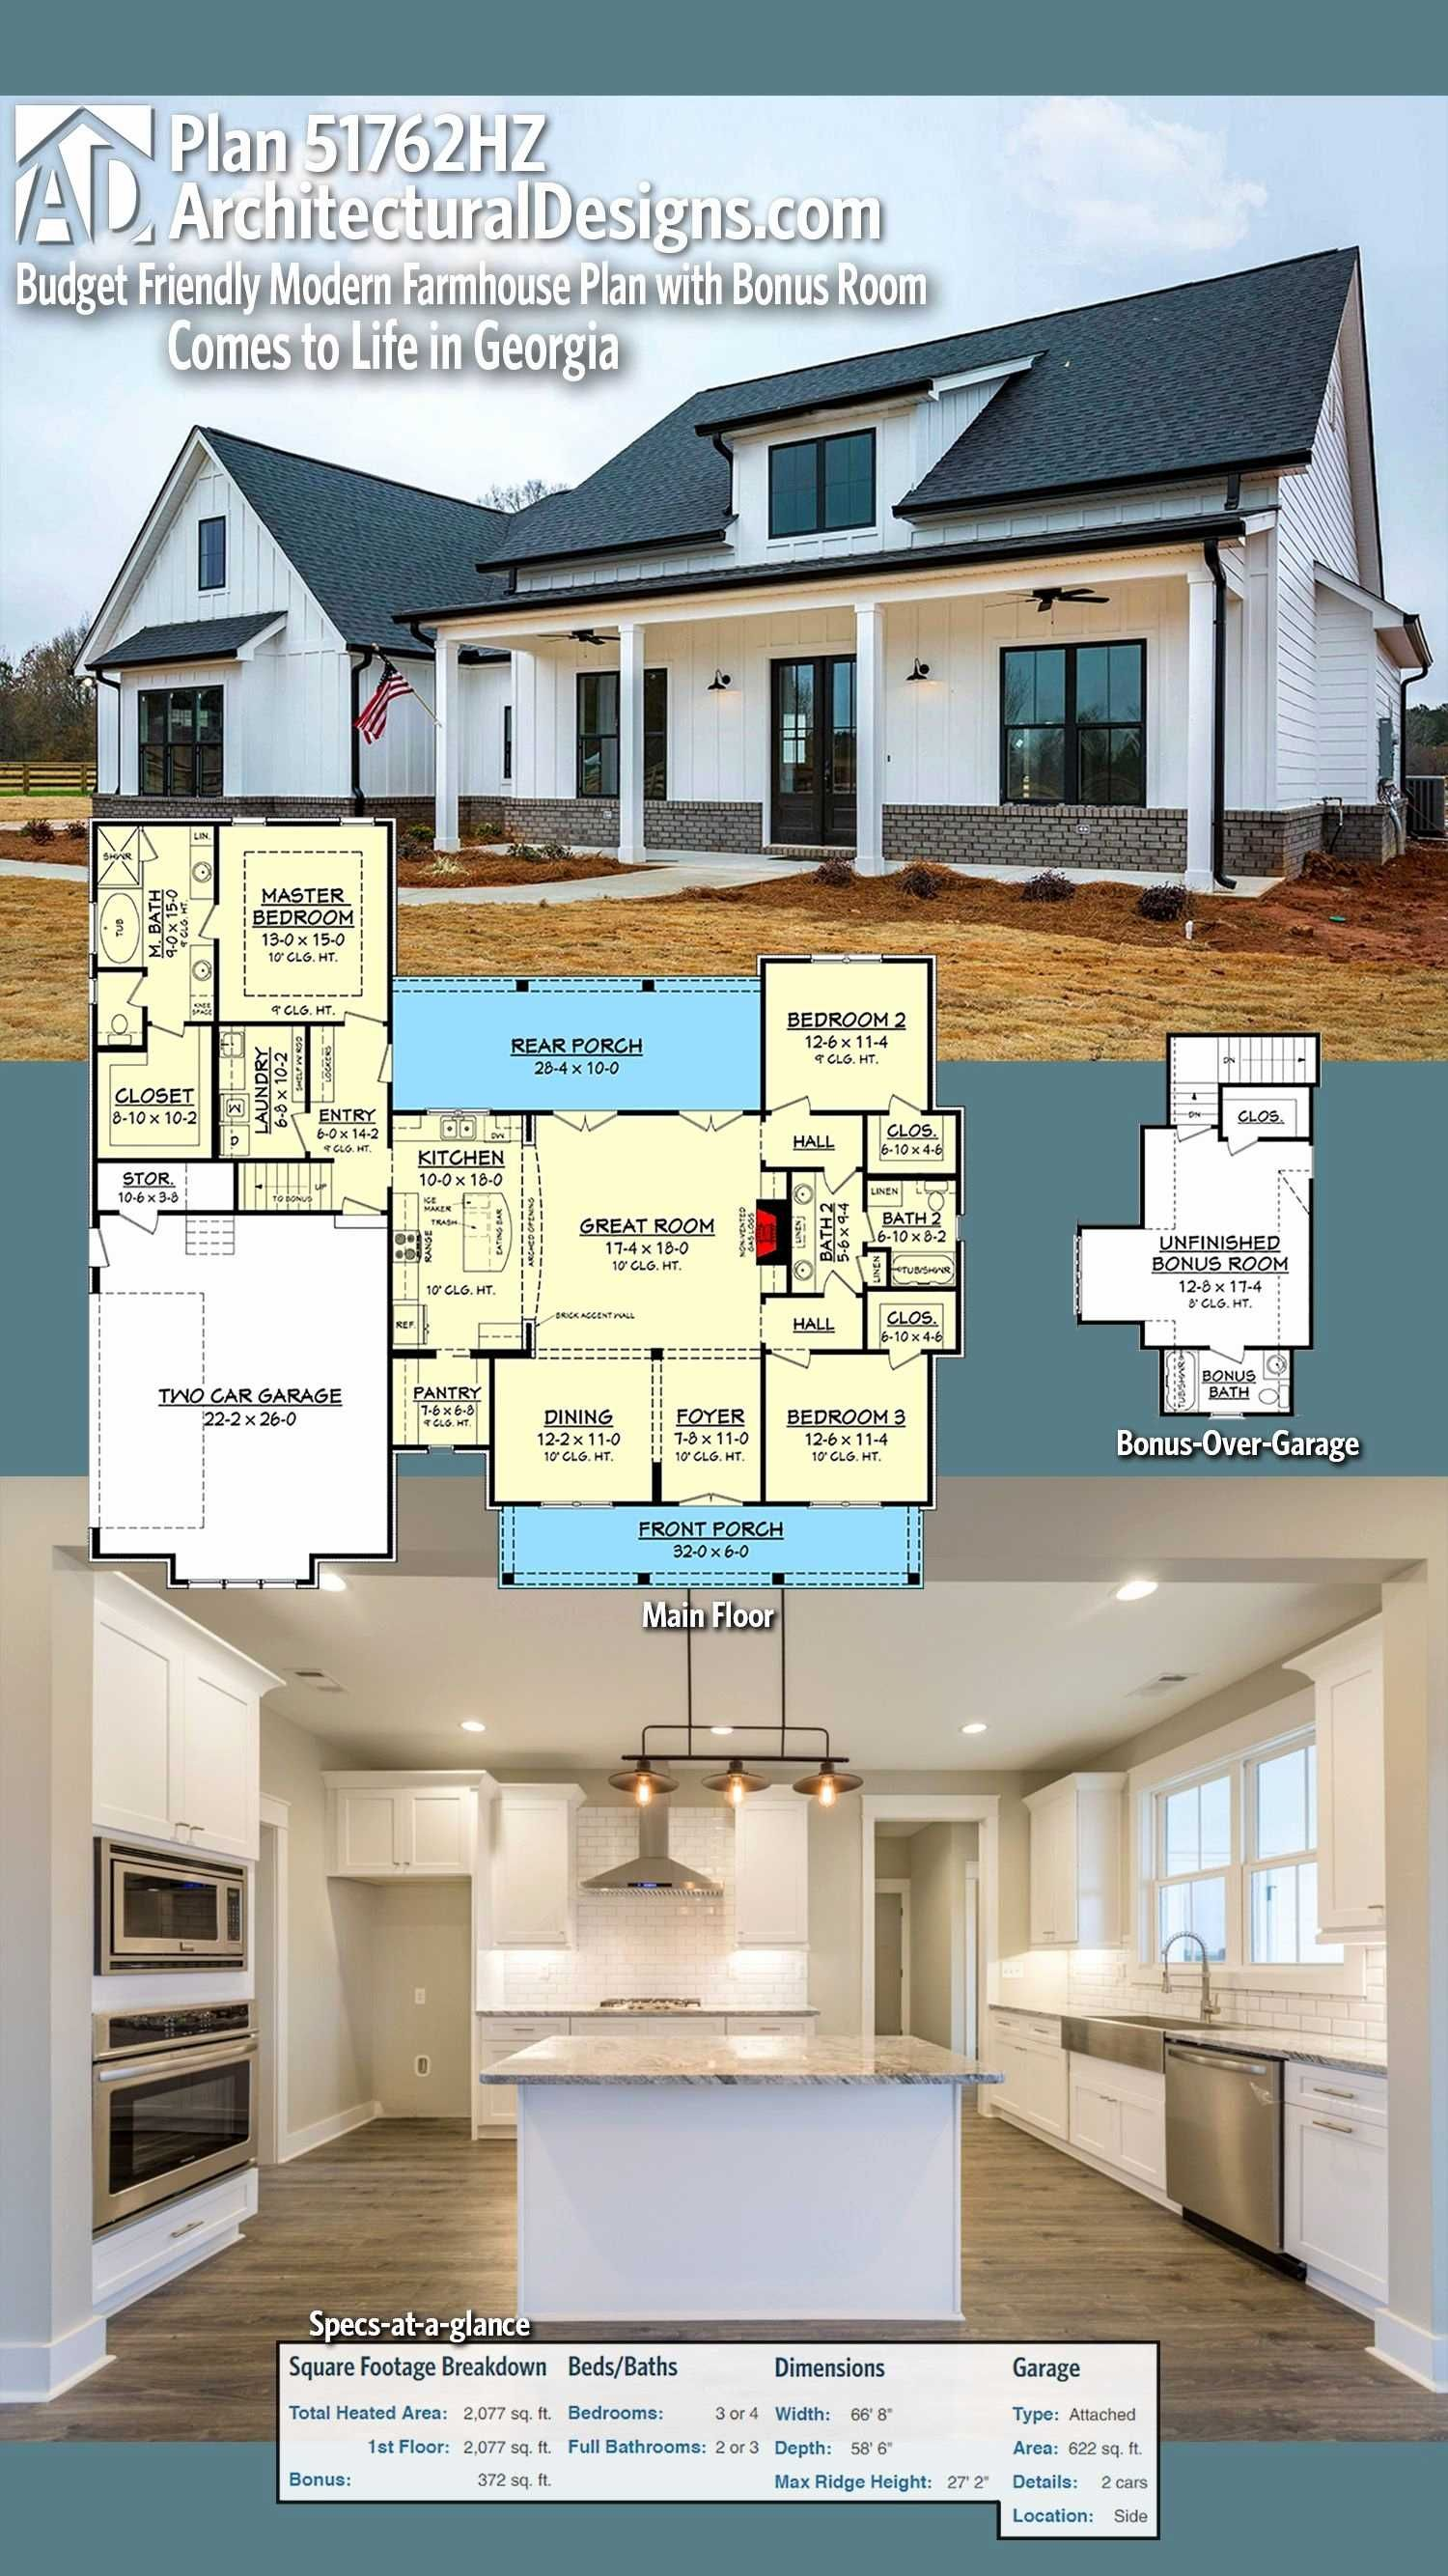 One Story Modern Farmhouse Floor Plans Screet One Story Modern Farmhouse Floor Architectural Design House Plans Farmhouse Floor Plans Modern Farmhouse Plans